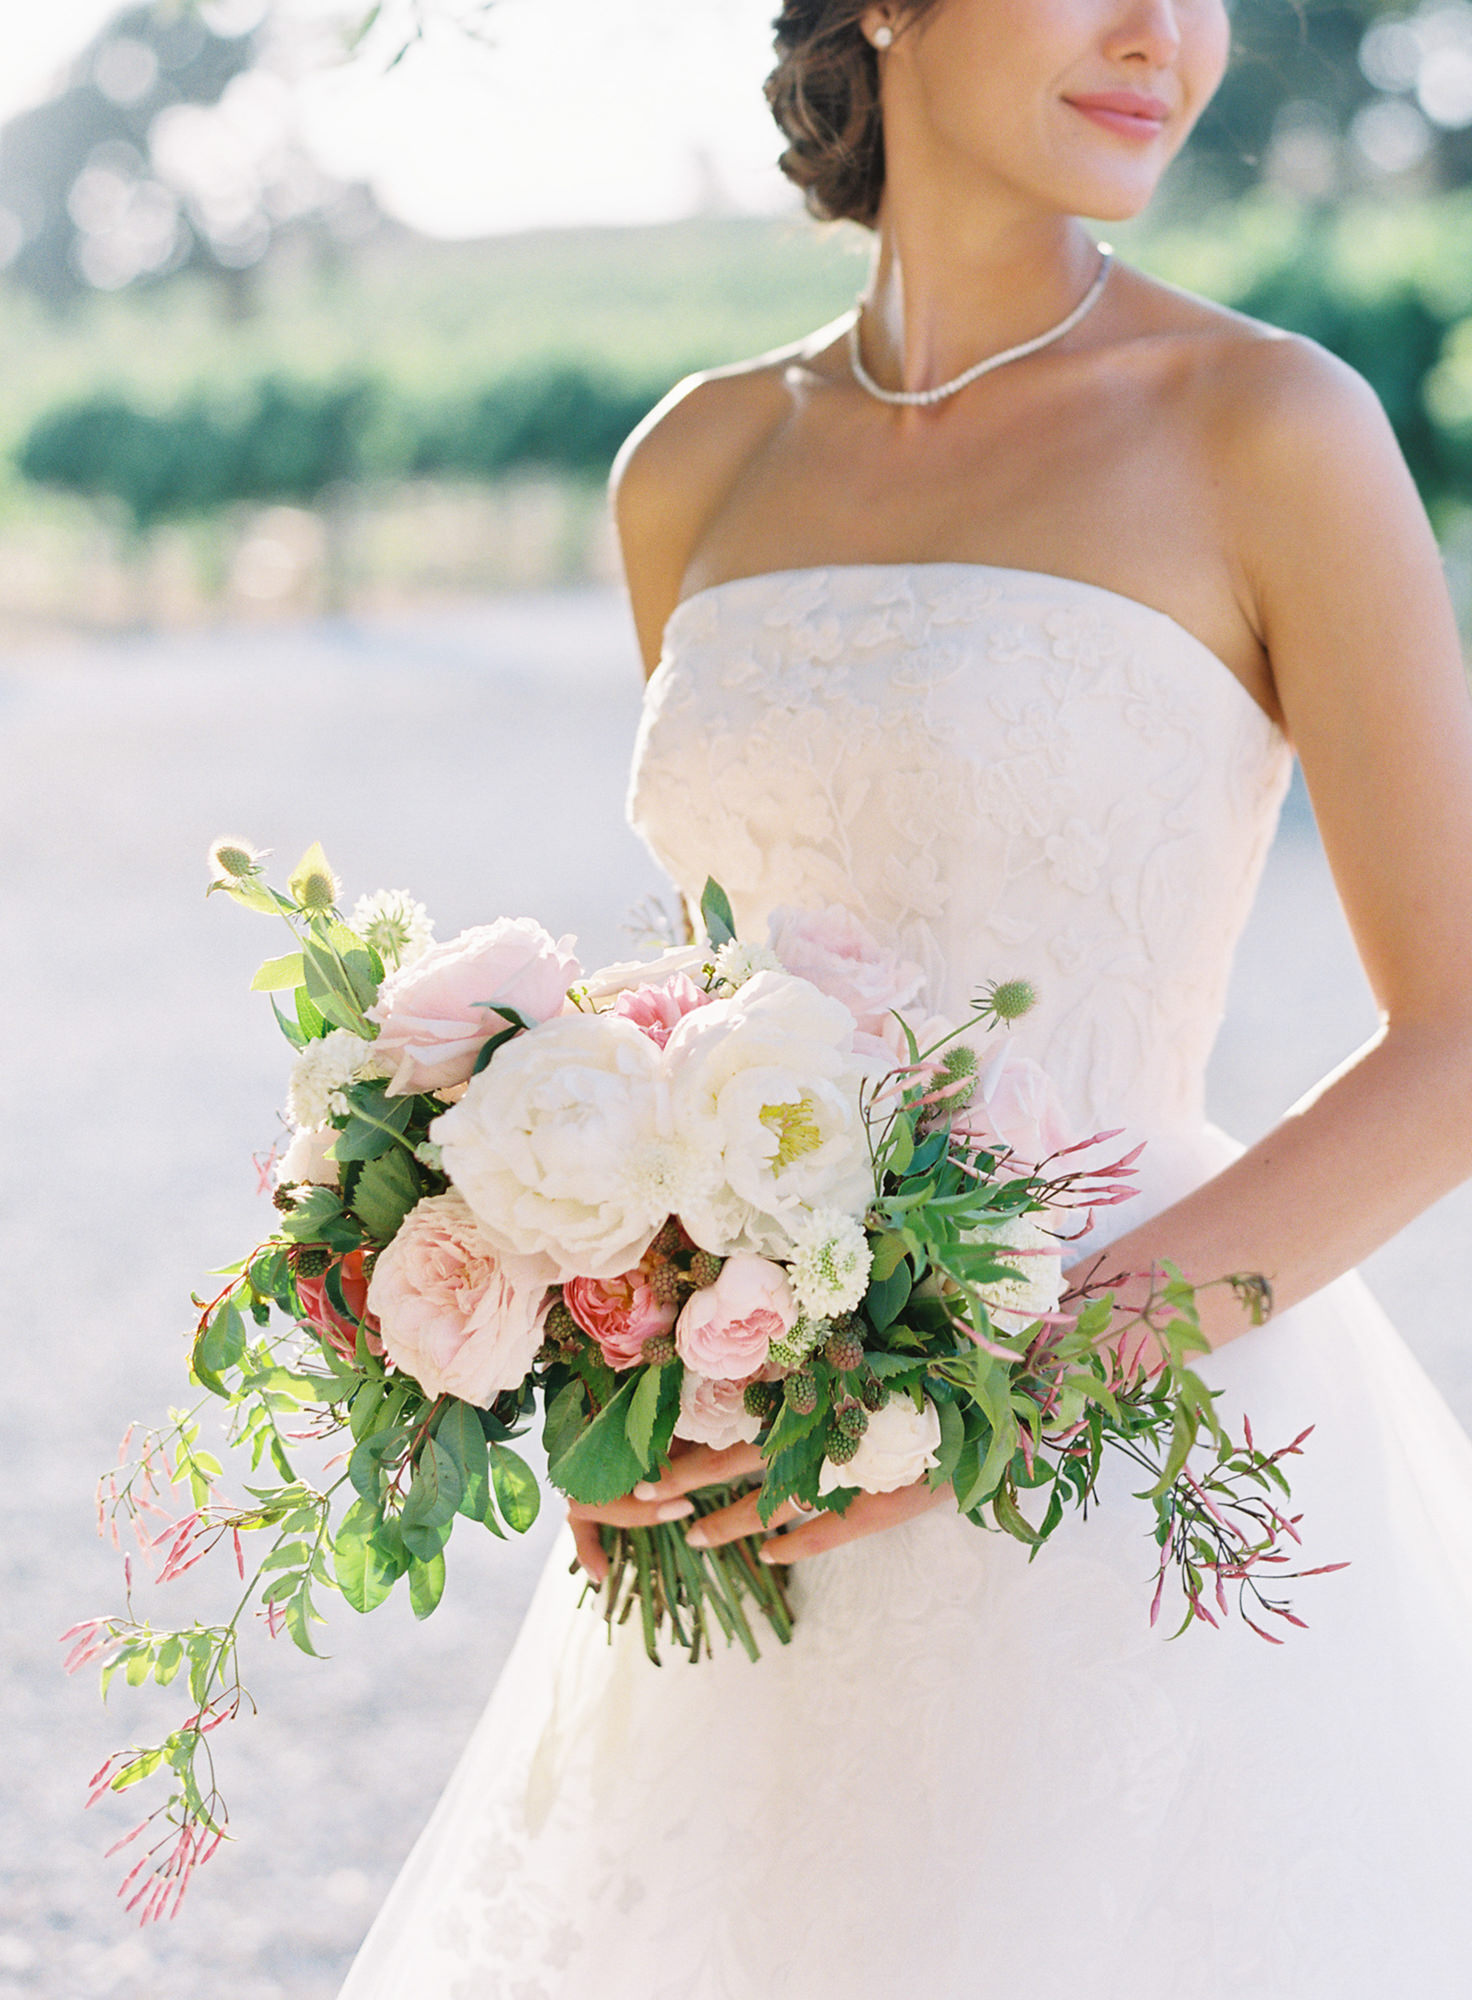 Bride with pink and white bridal bouquet Jen Huang Los Angeles wedding photographer